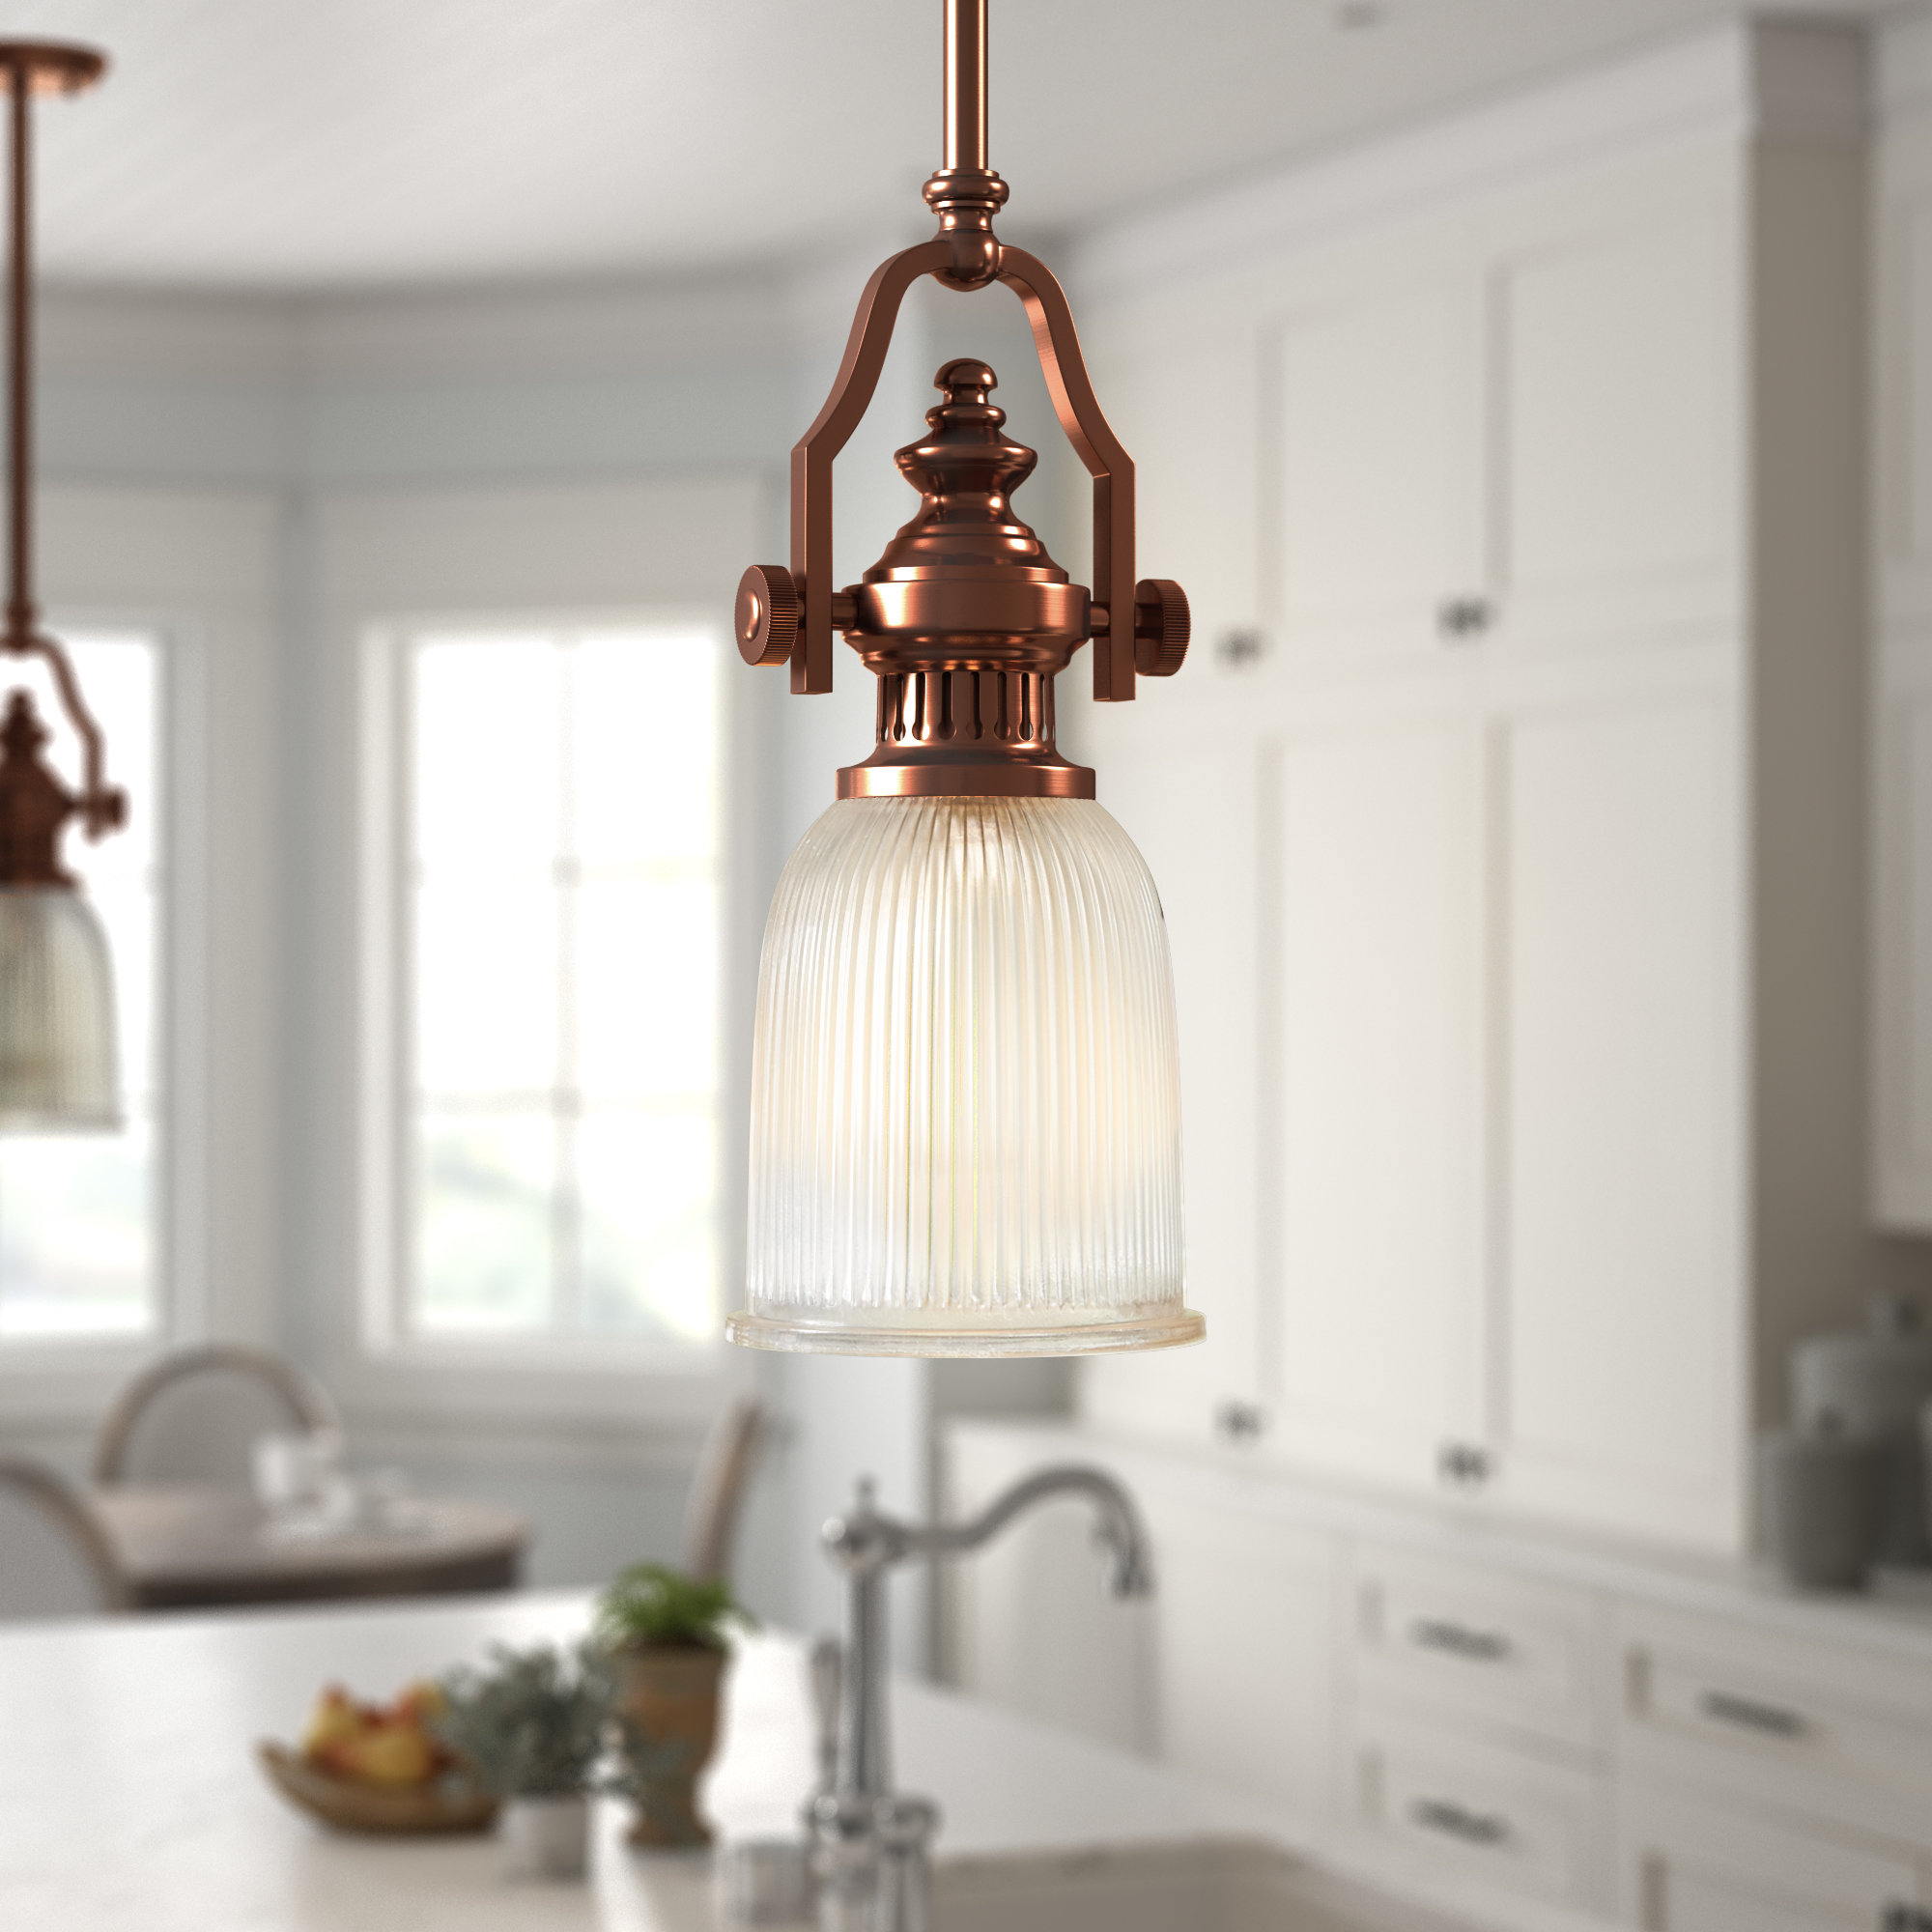 Erico 1 Light Single Bell Pendant Inside Proctor 1 Light Bowl Pendants (View 8 of 30)